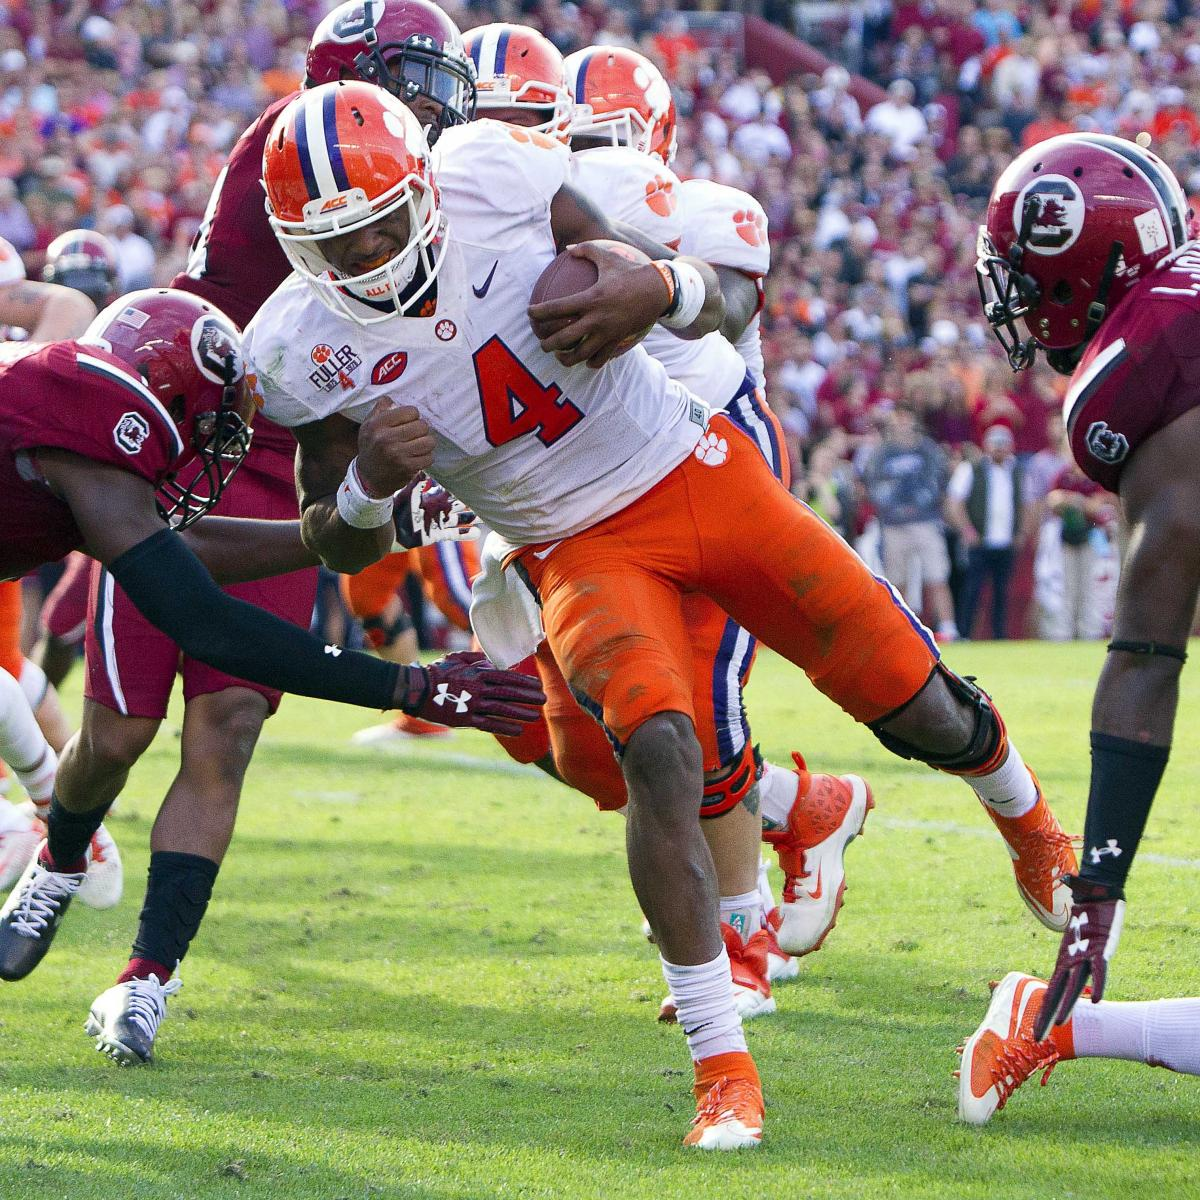 College Football Scores 2015: Final Results, Box Scores for Week 13 Top 25 Games | Bleacher ...